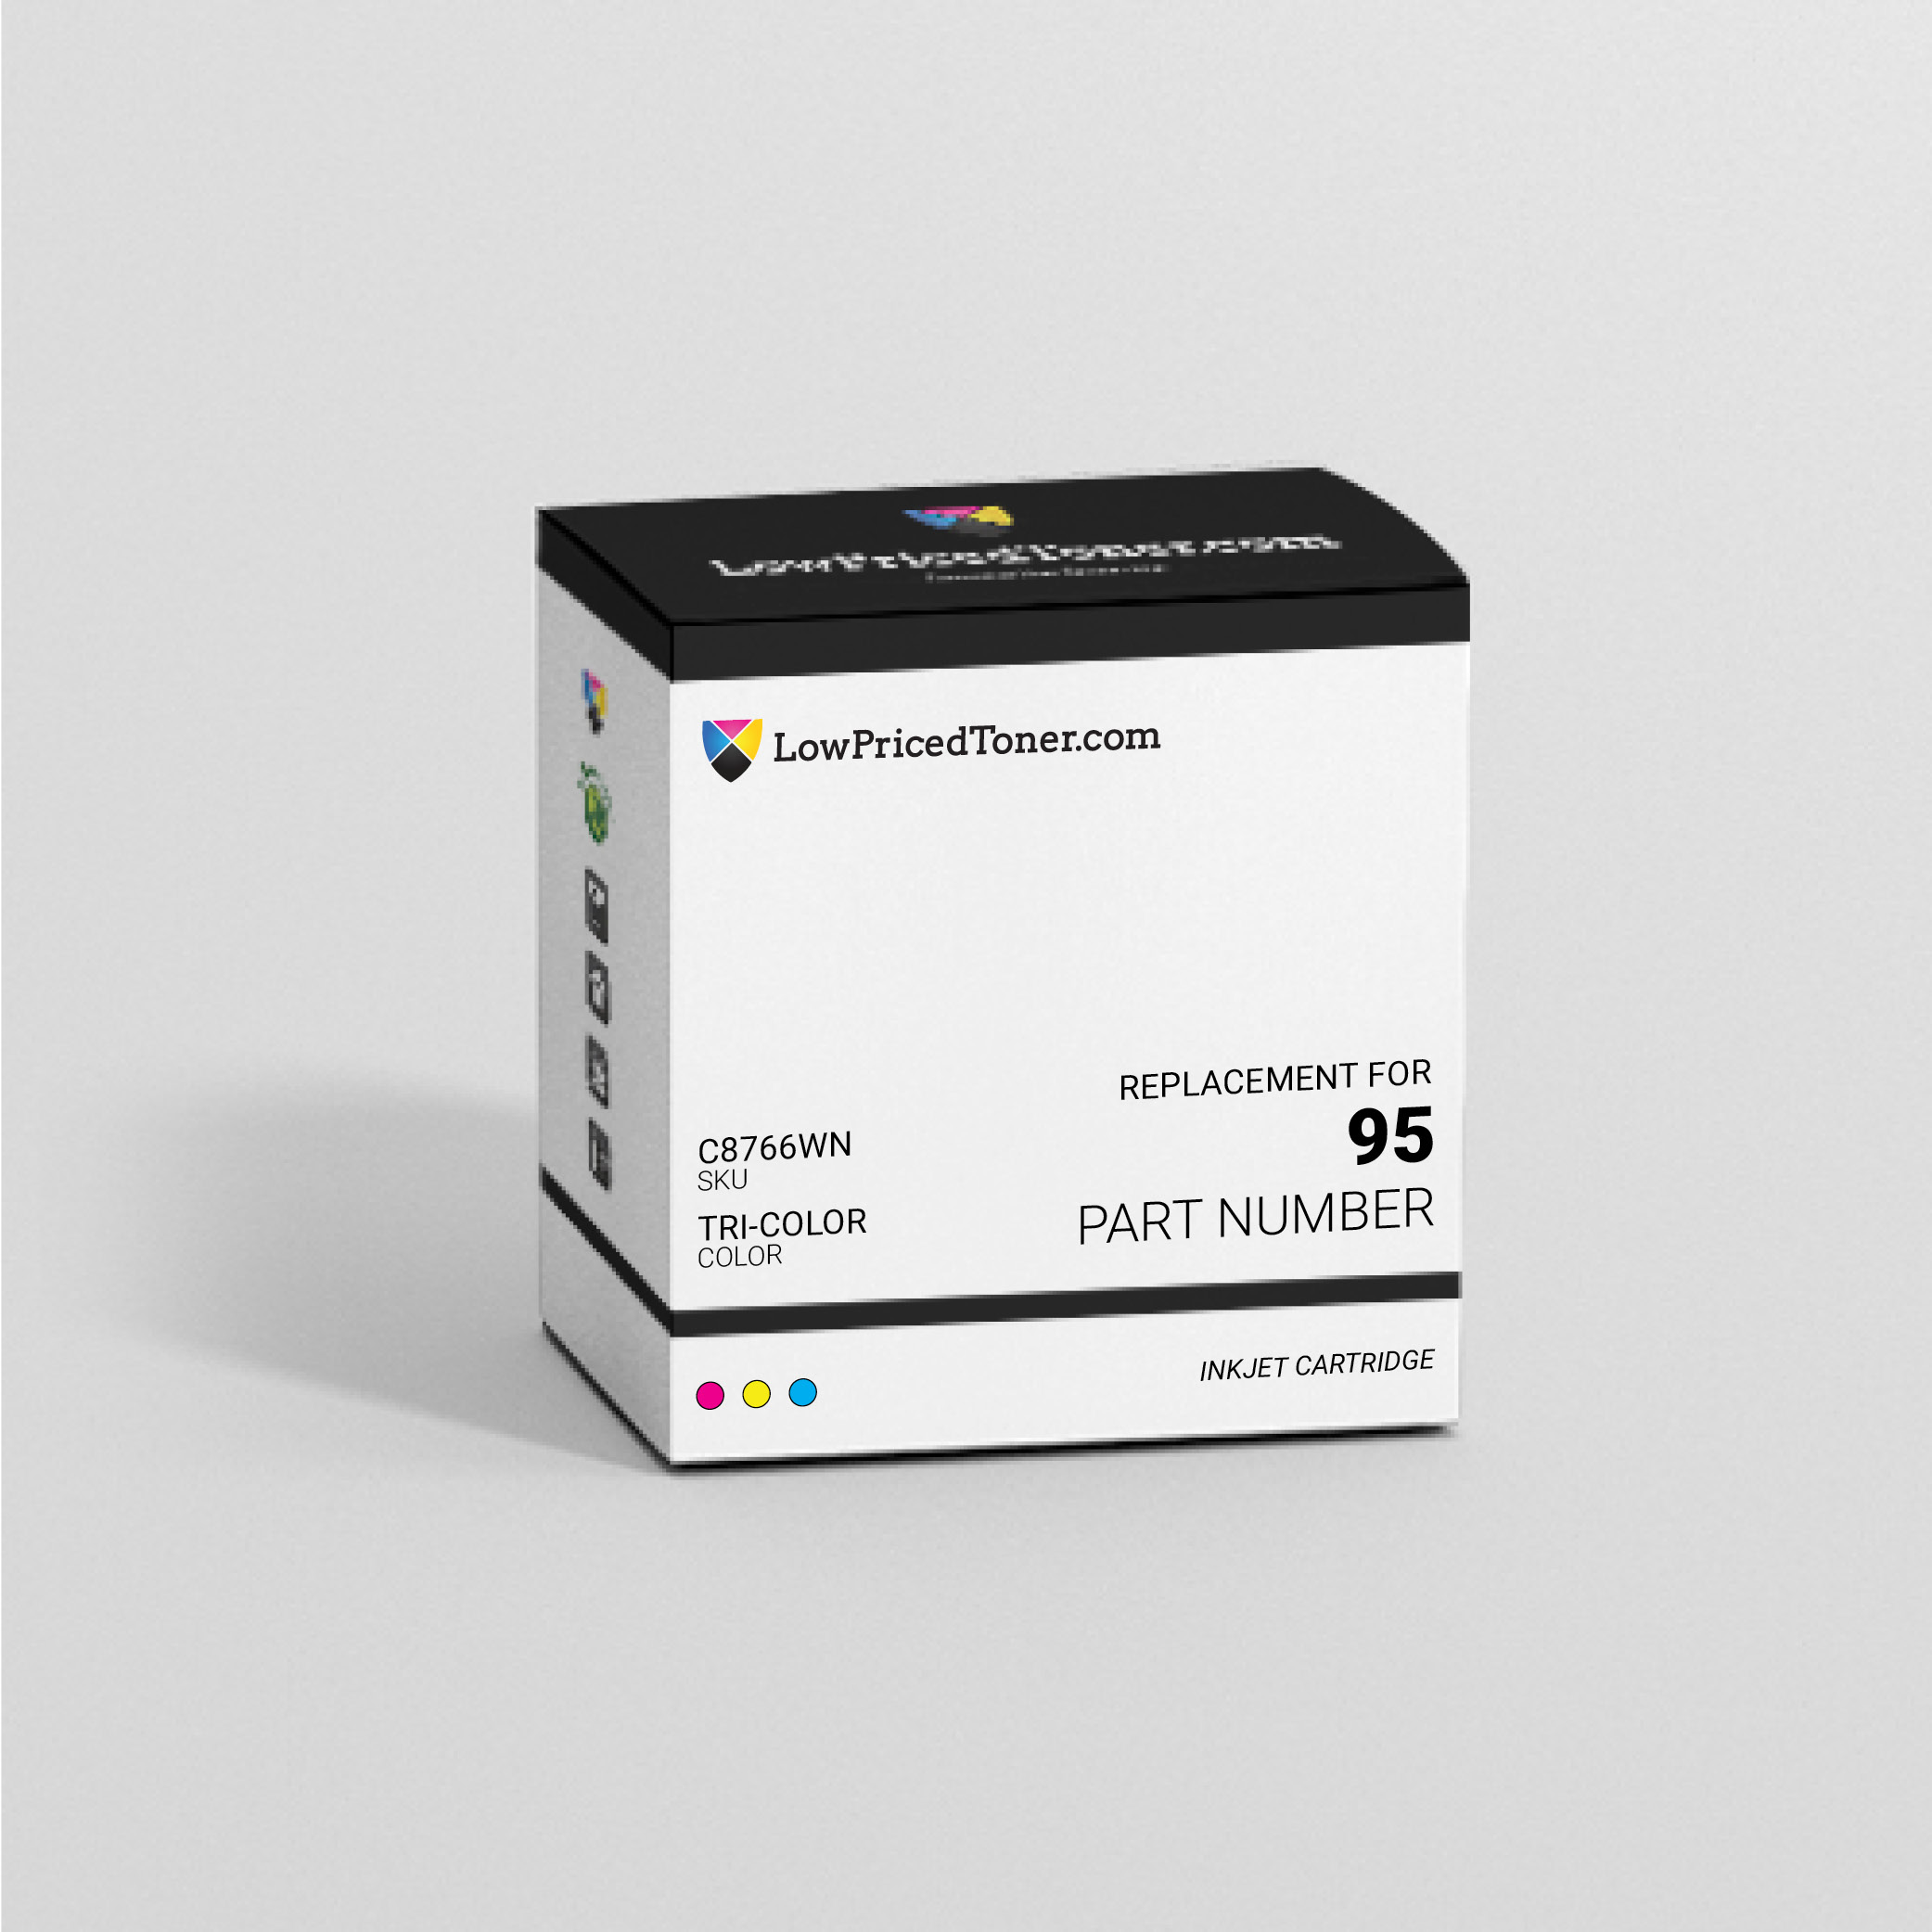 HP C8766WN 95 Remanufactured TriColor Ink Cartridge